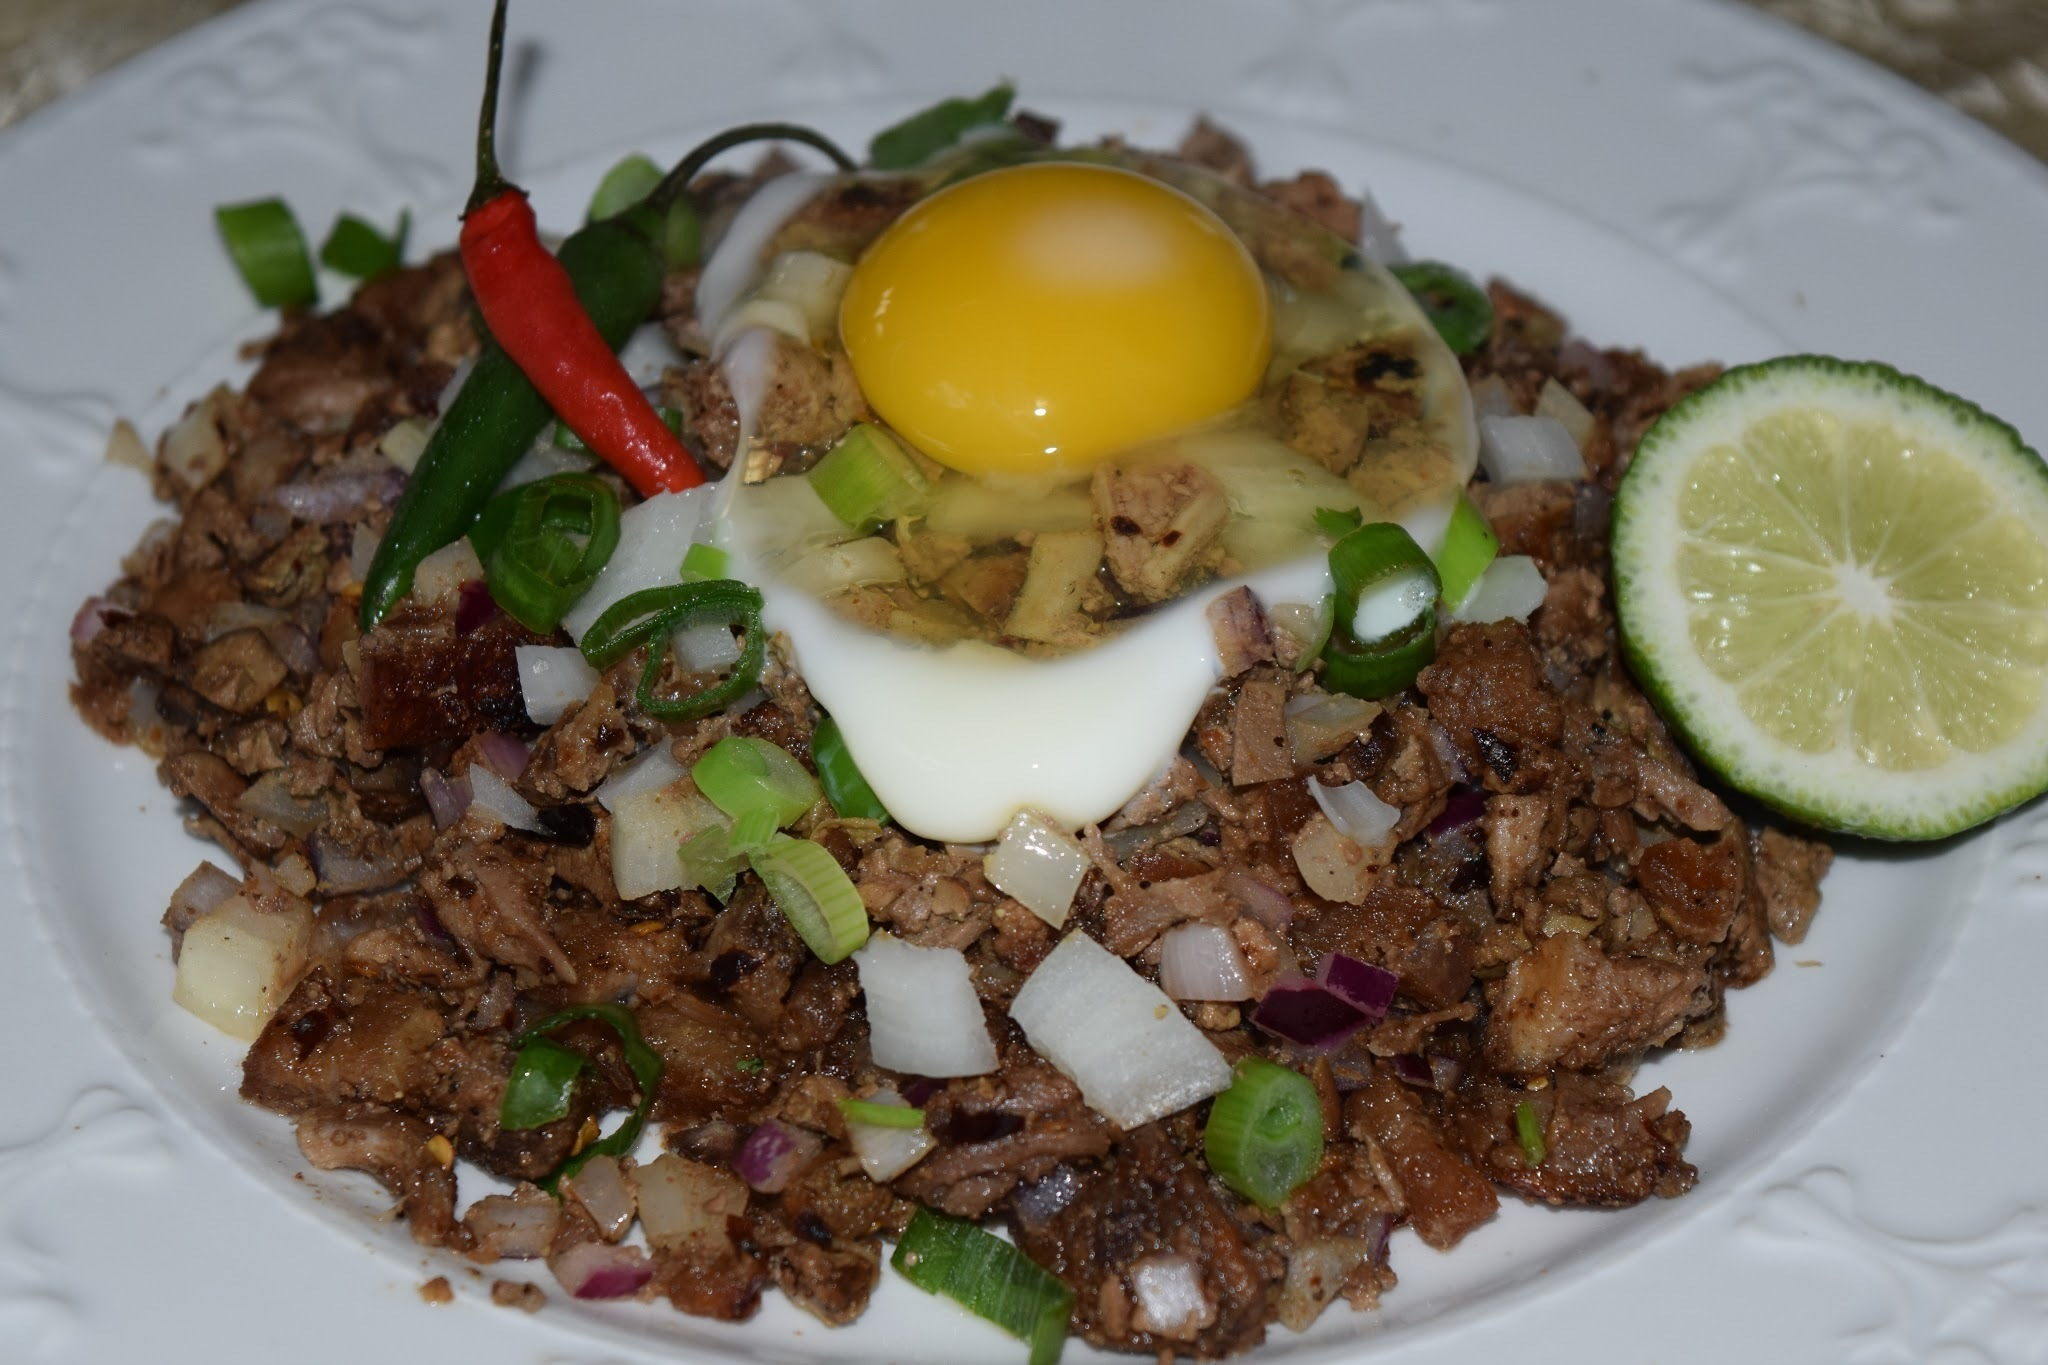 Pork Sisig (Sour and Spicy Chopped Pork Belly, Ears and Liver)